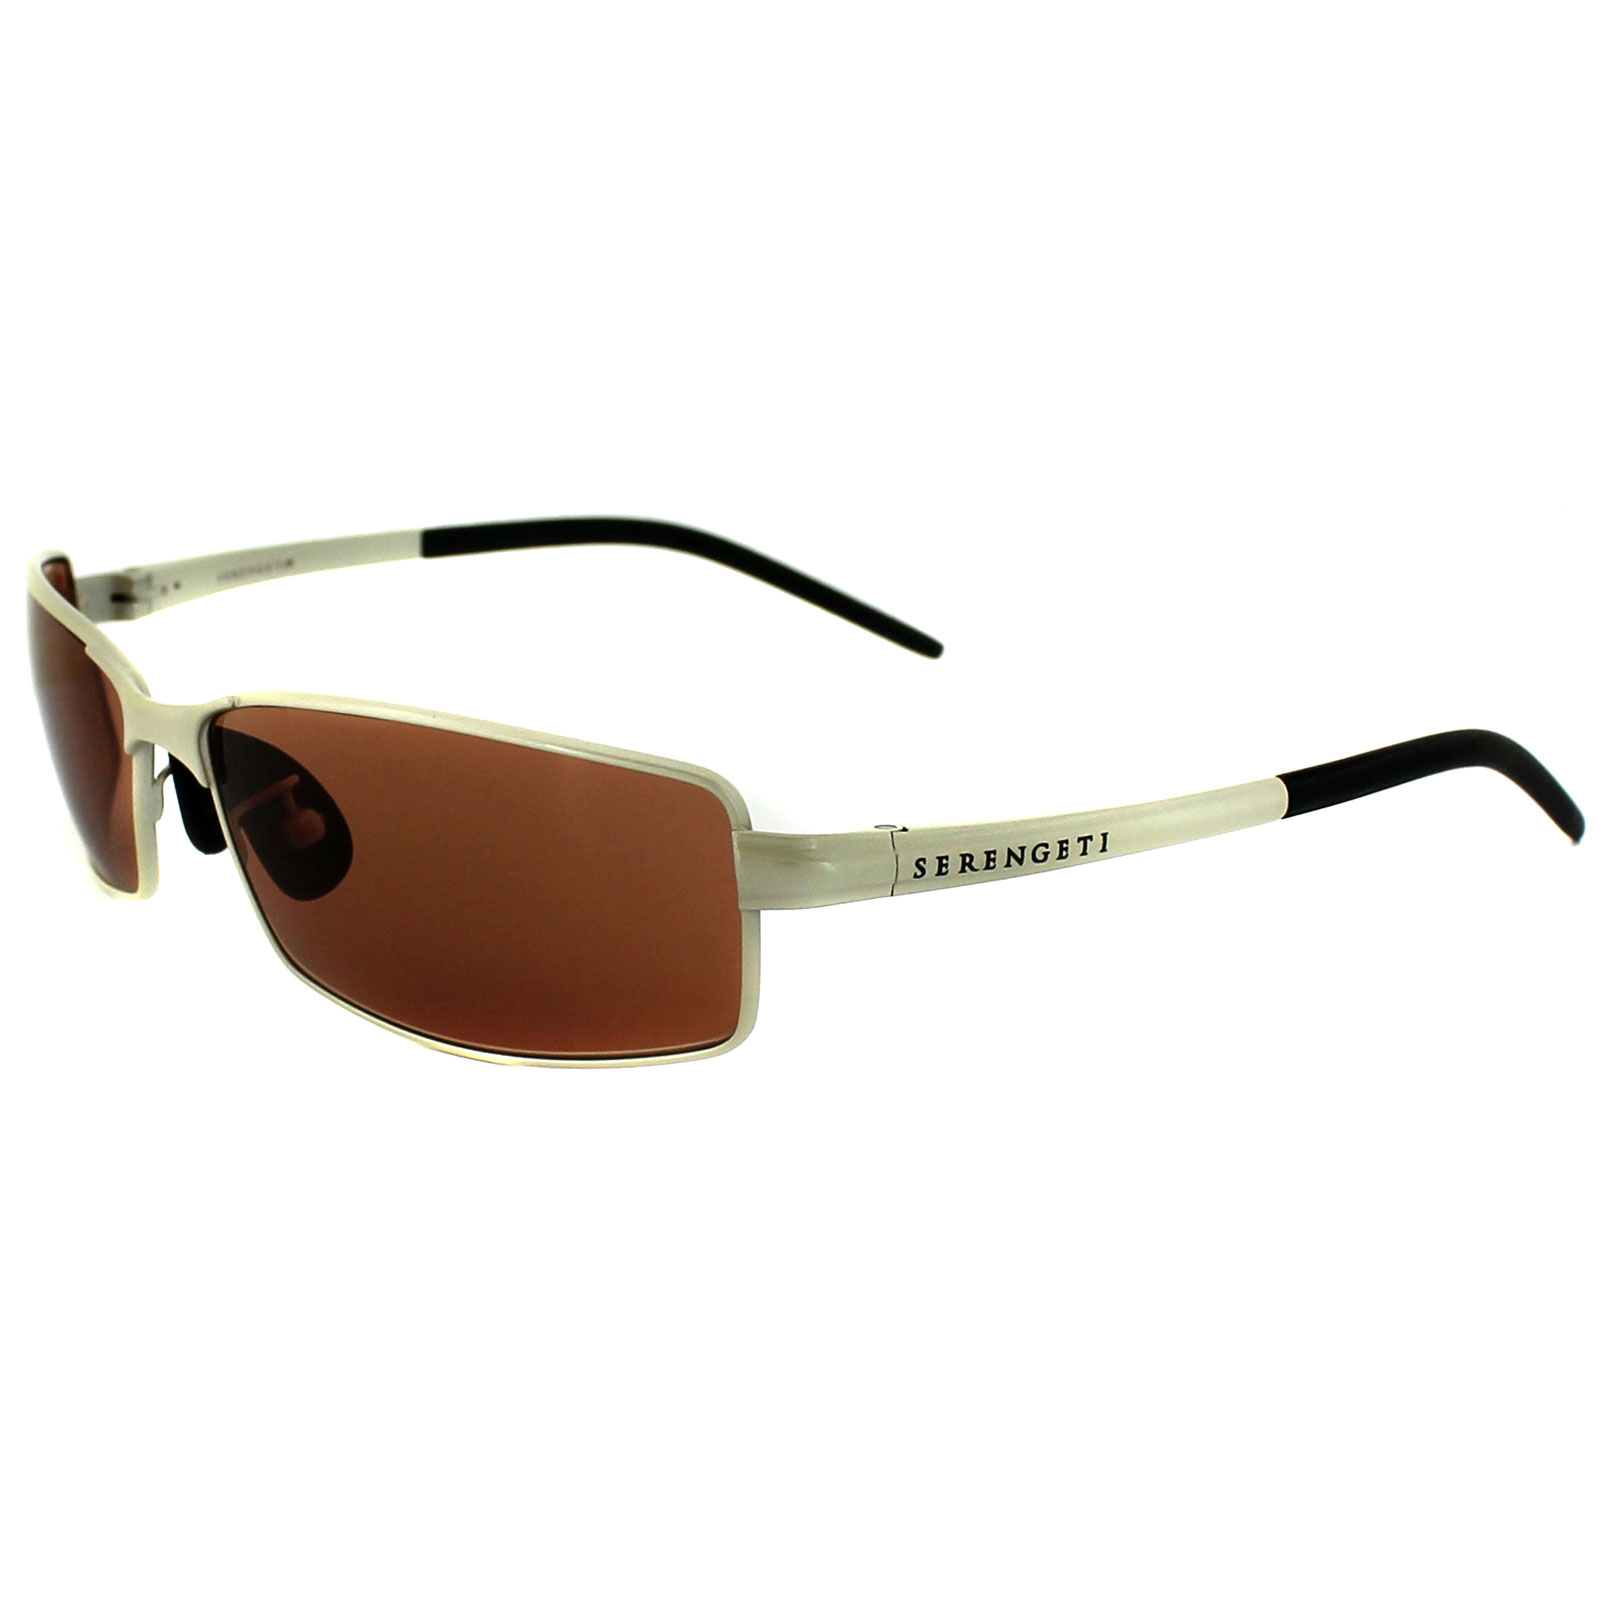 d98264b98f6 Serengeti Sunglasses Review « Heritage Malta